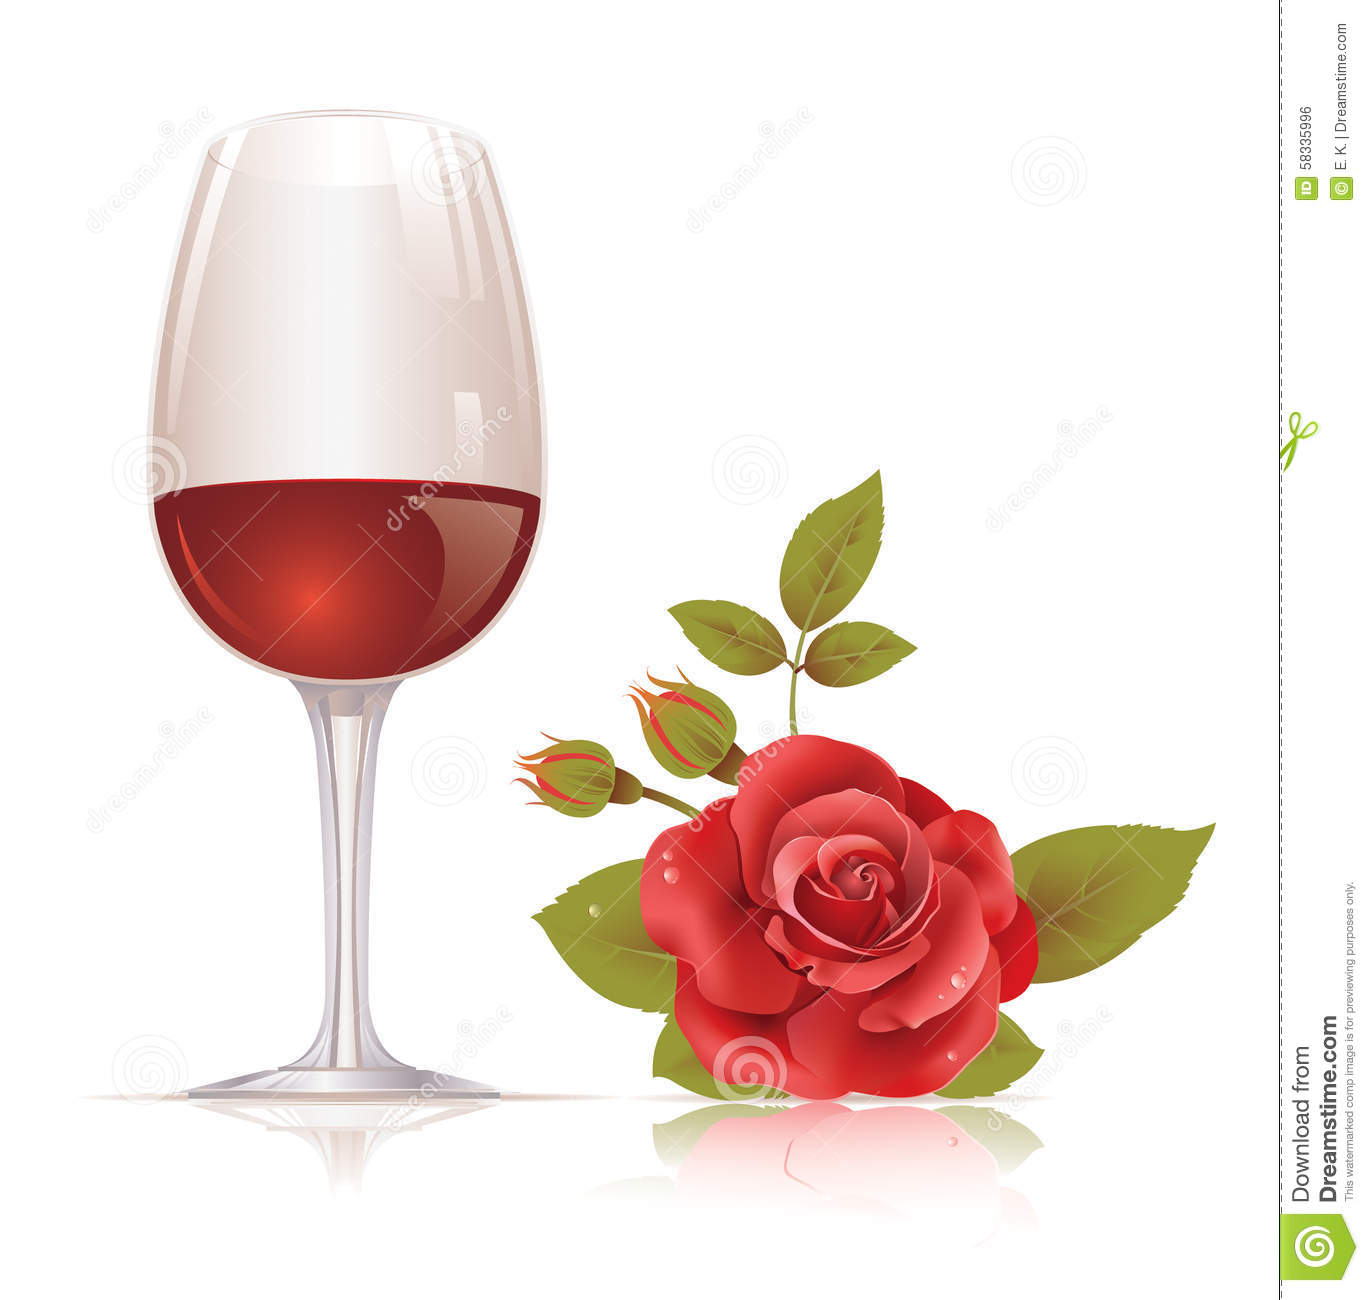 Cymk Puzzle Wine Glass And Red Rose Stock Vector Image 58335996